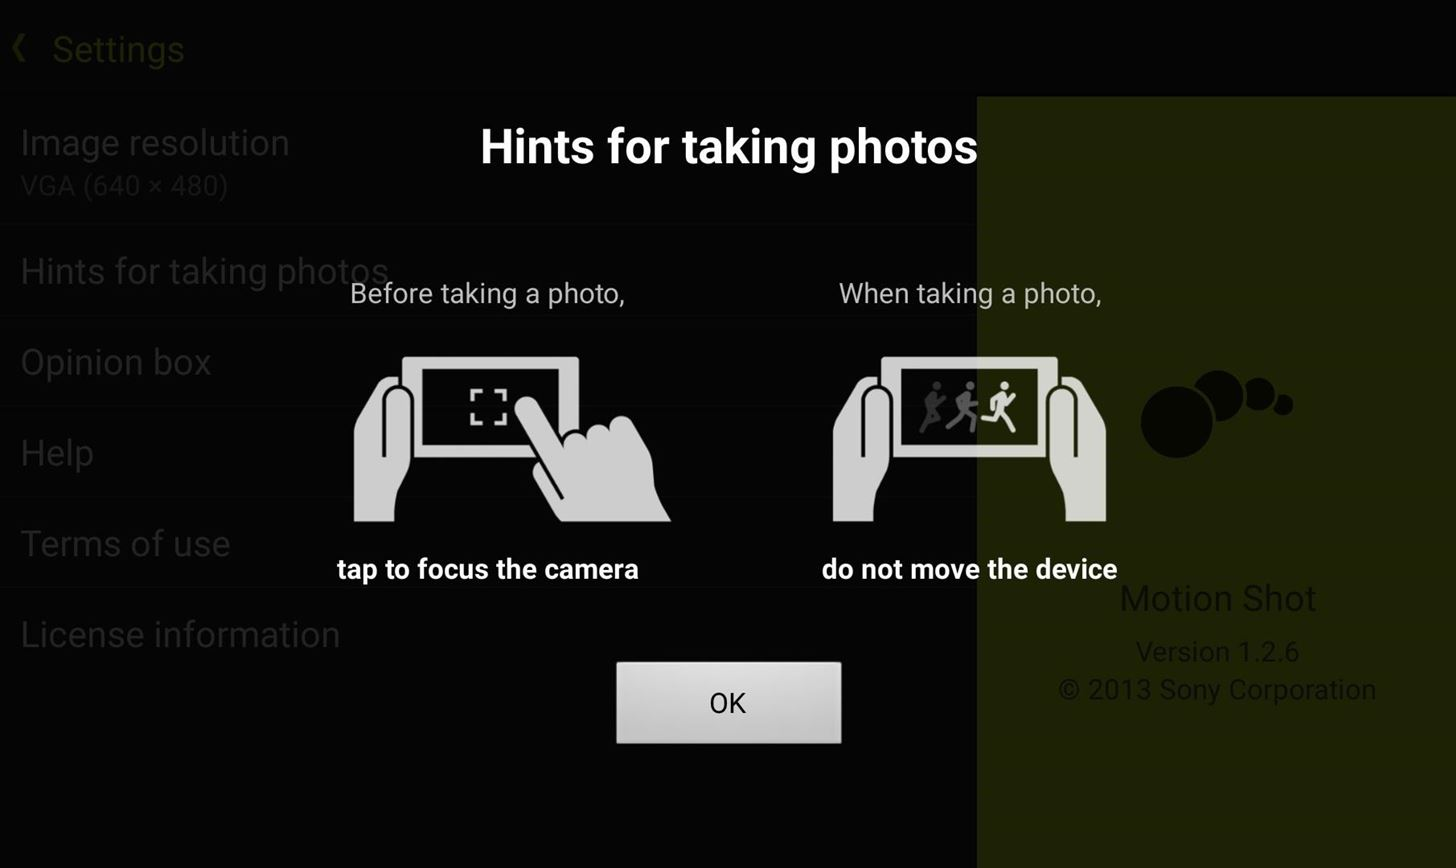 How to Install the Sony Xperia Z2 Camera on Any Android Phone for AR Effects, Motion Shots, & More